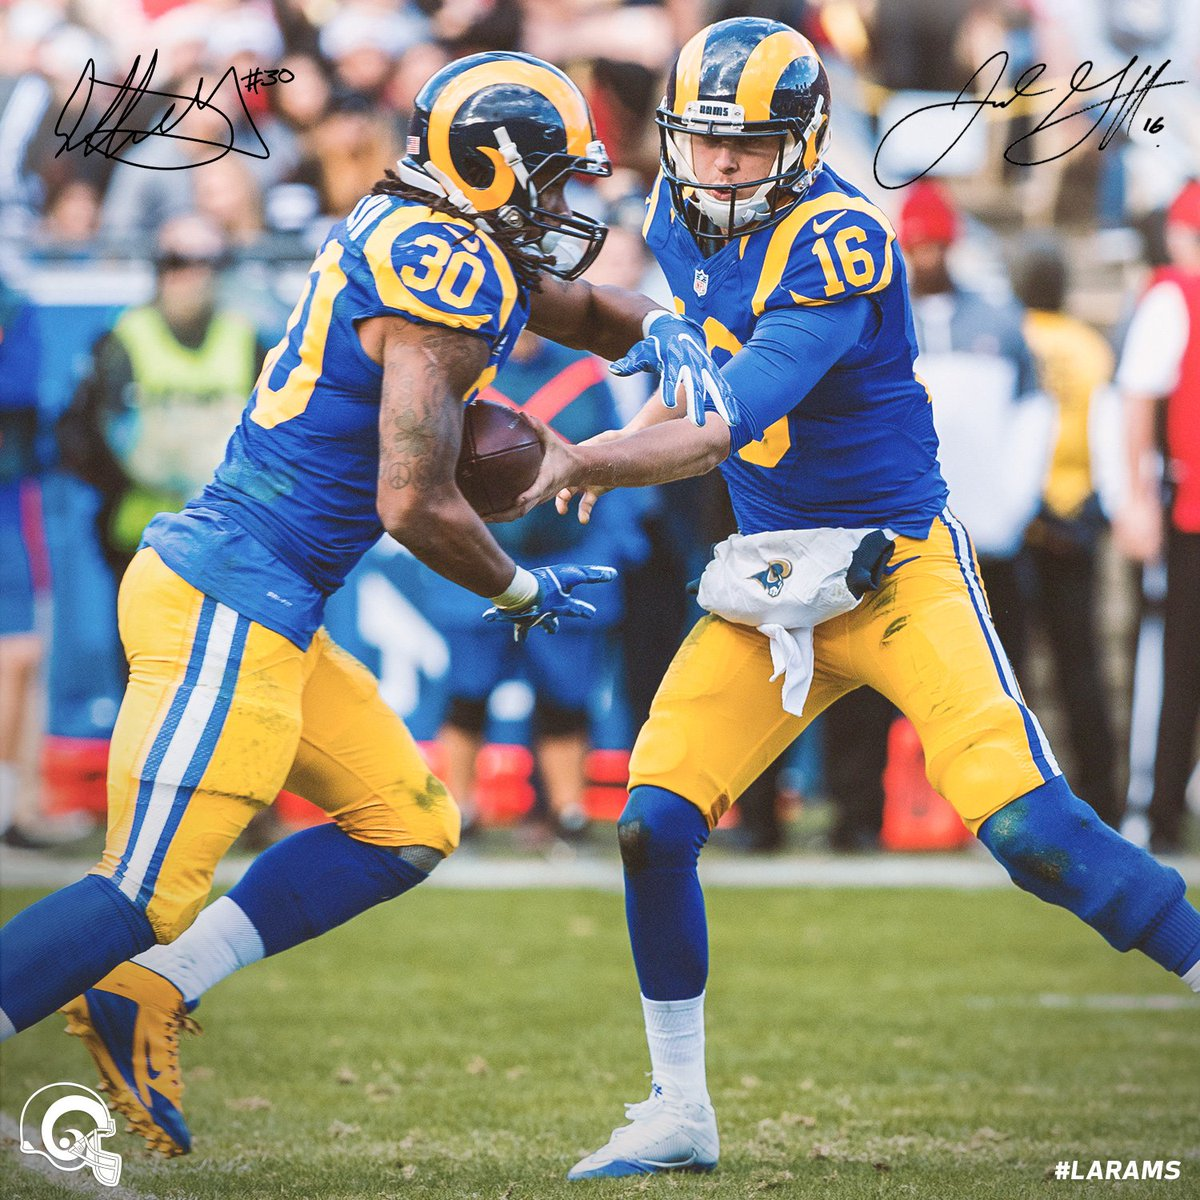 b8dbd5d6ab7 Los Angeles Rams on Twitter: